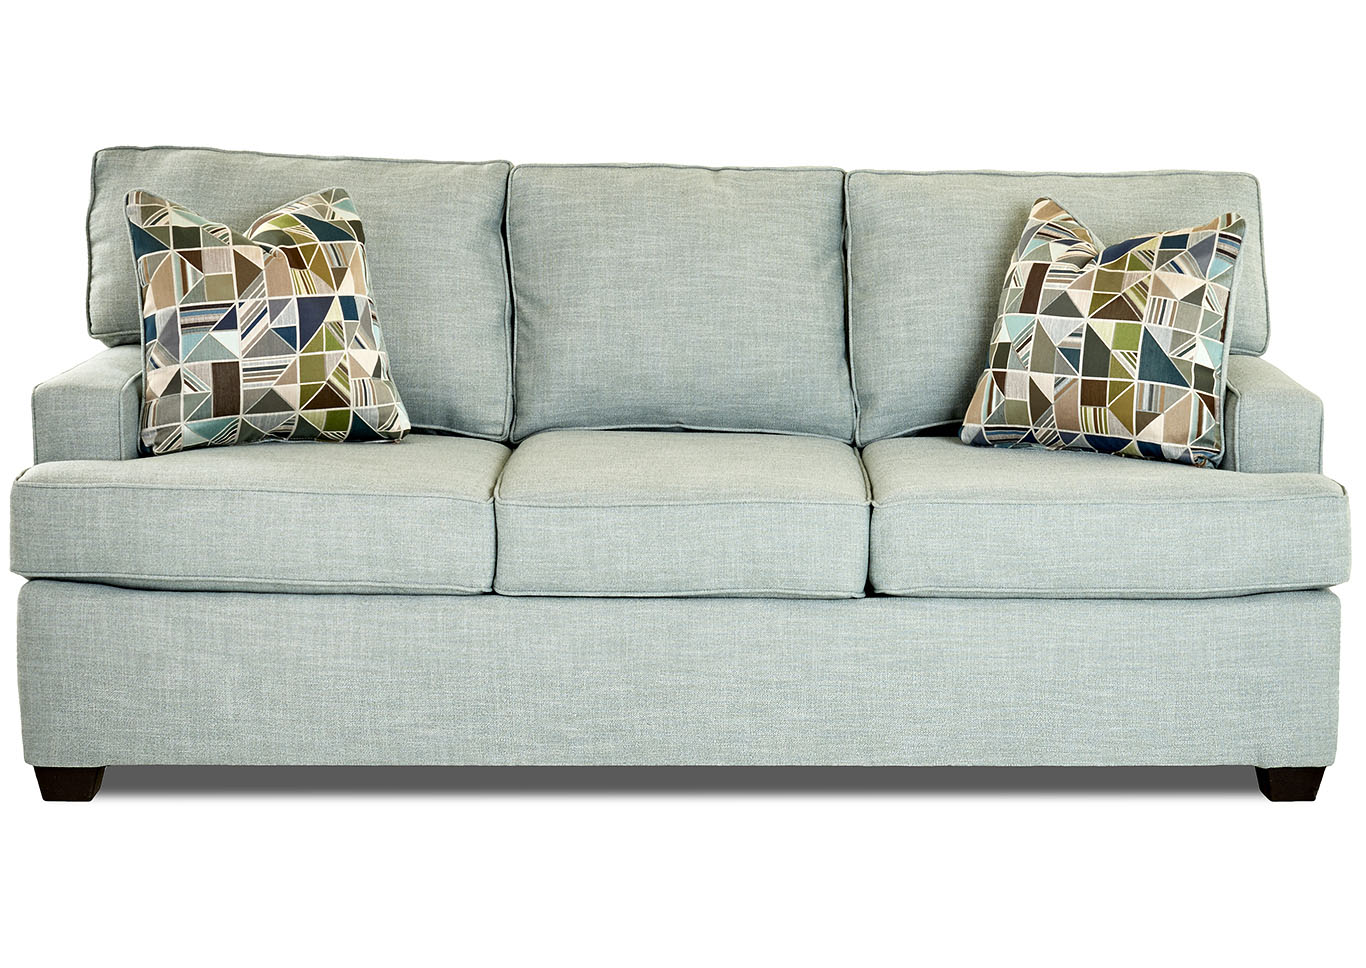 Cruze Conversation-Capri Stationary Fabric Sofa,Klaussner Home Furnishings